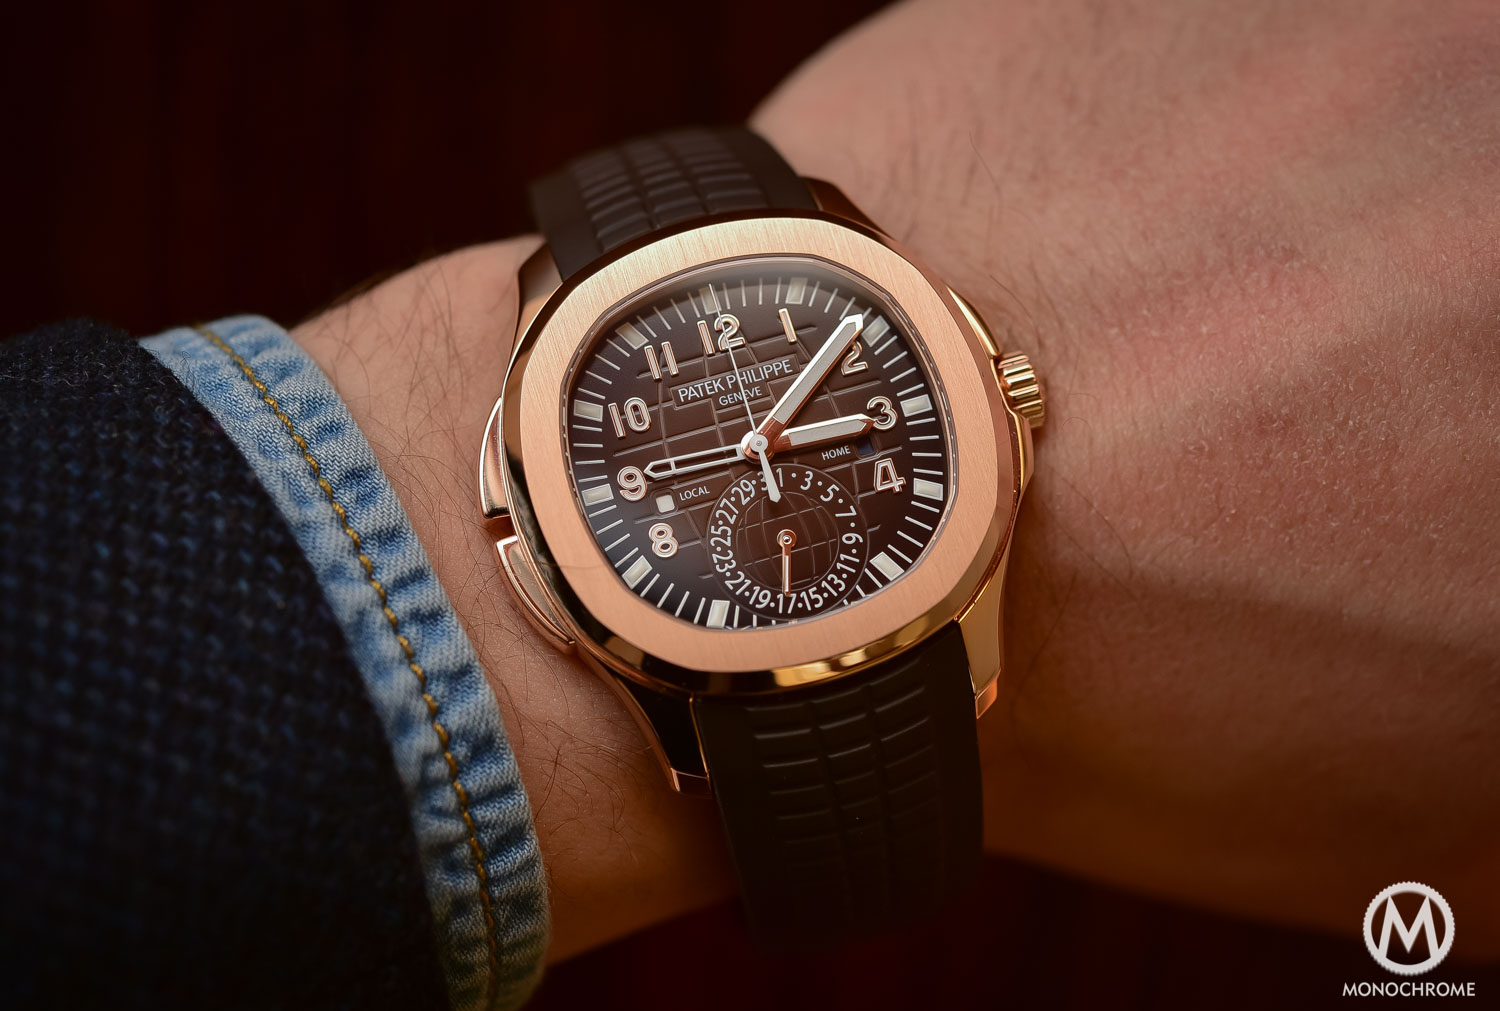 Top 5 Watches from Baselworld 2016 - Patek Philippe Aquanaut ref. 5164R - 2